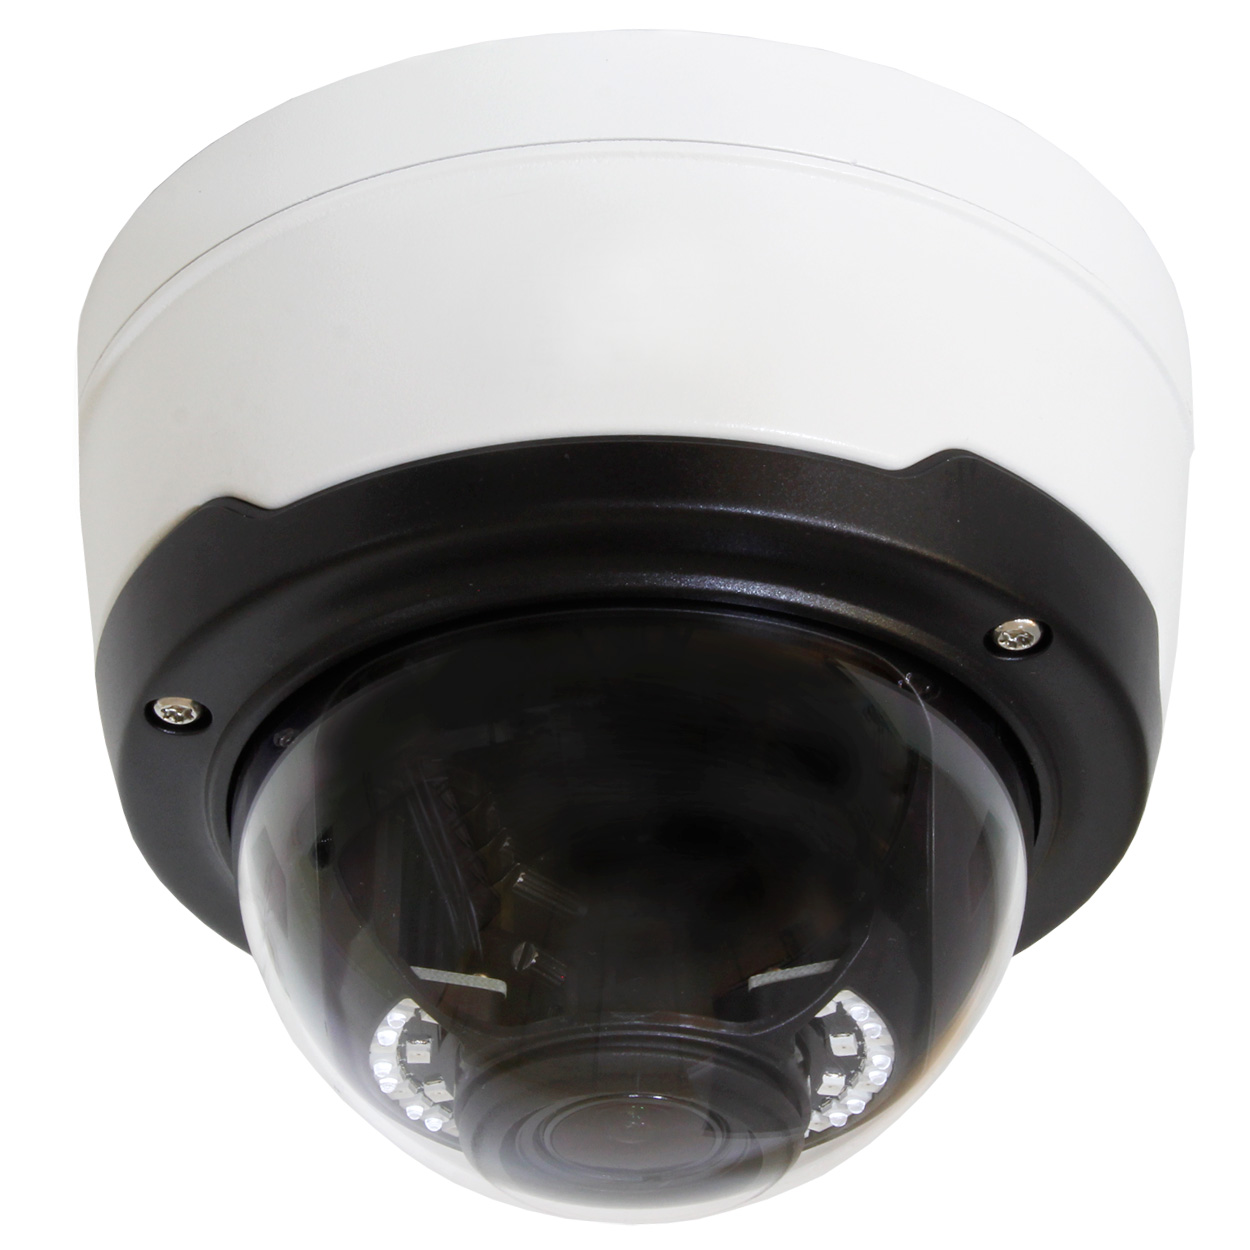 4MP Outdoor Vandal Proof IP Dome Camera, 2.8-12mm Varifocal Lens, H.265, 147ft IR (with PoE, Audio In/Out, Alarm I/O, Reset, and BNC Video Output)